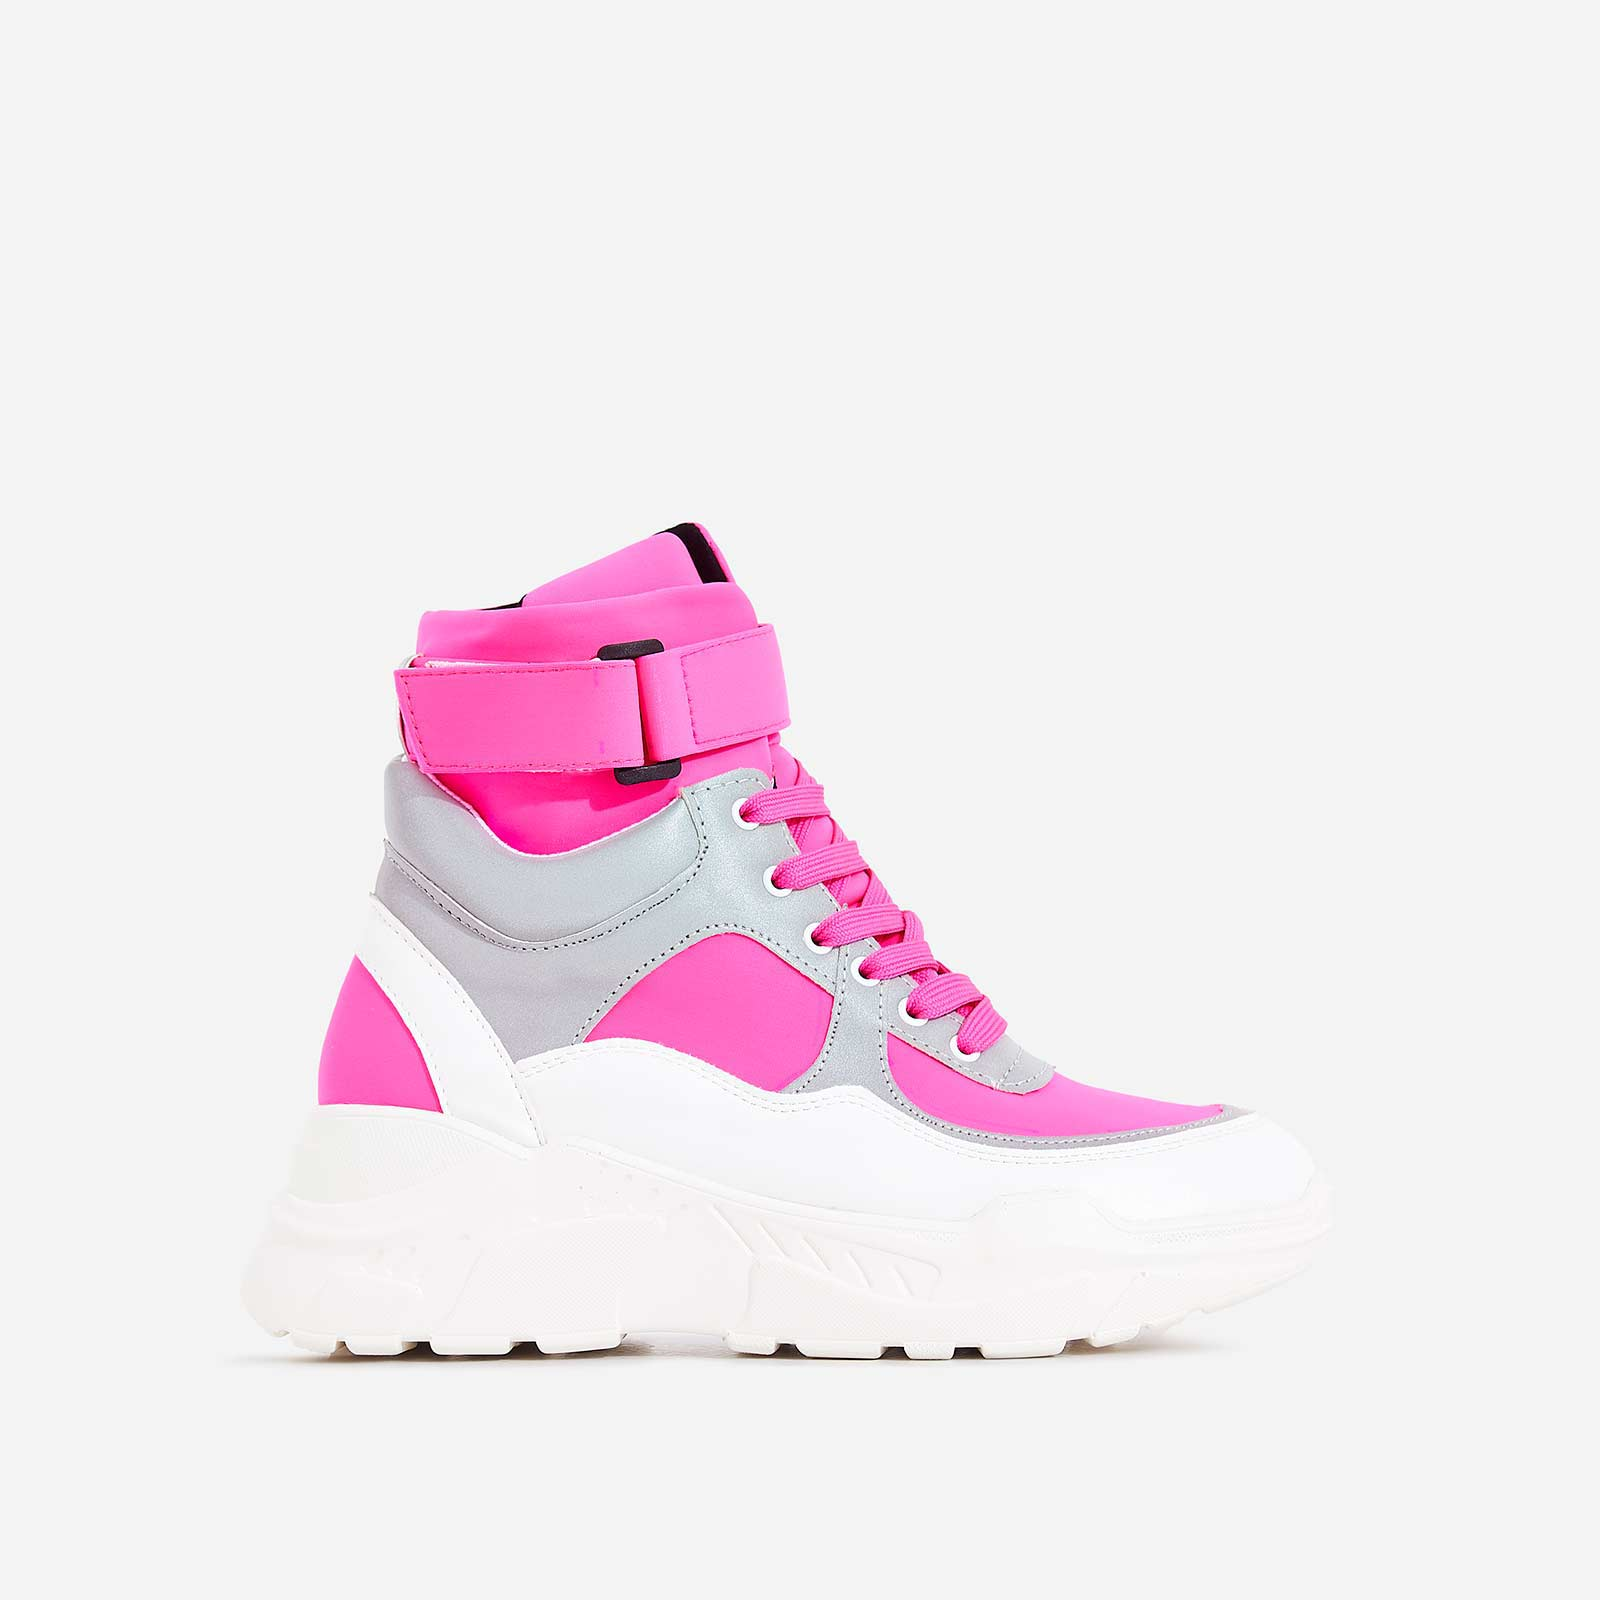 Coco High Top Reflective Trainer In Pink